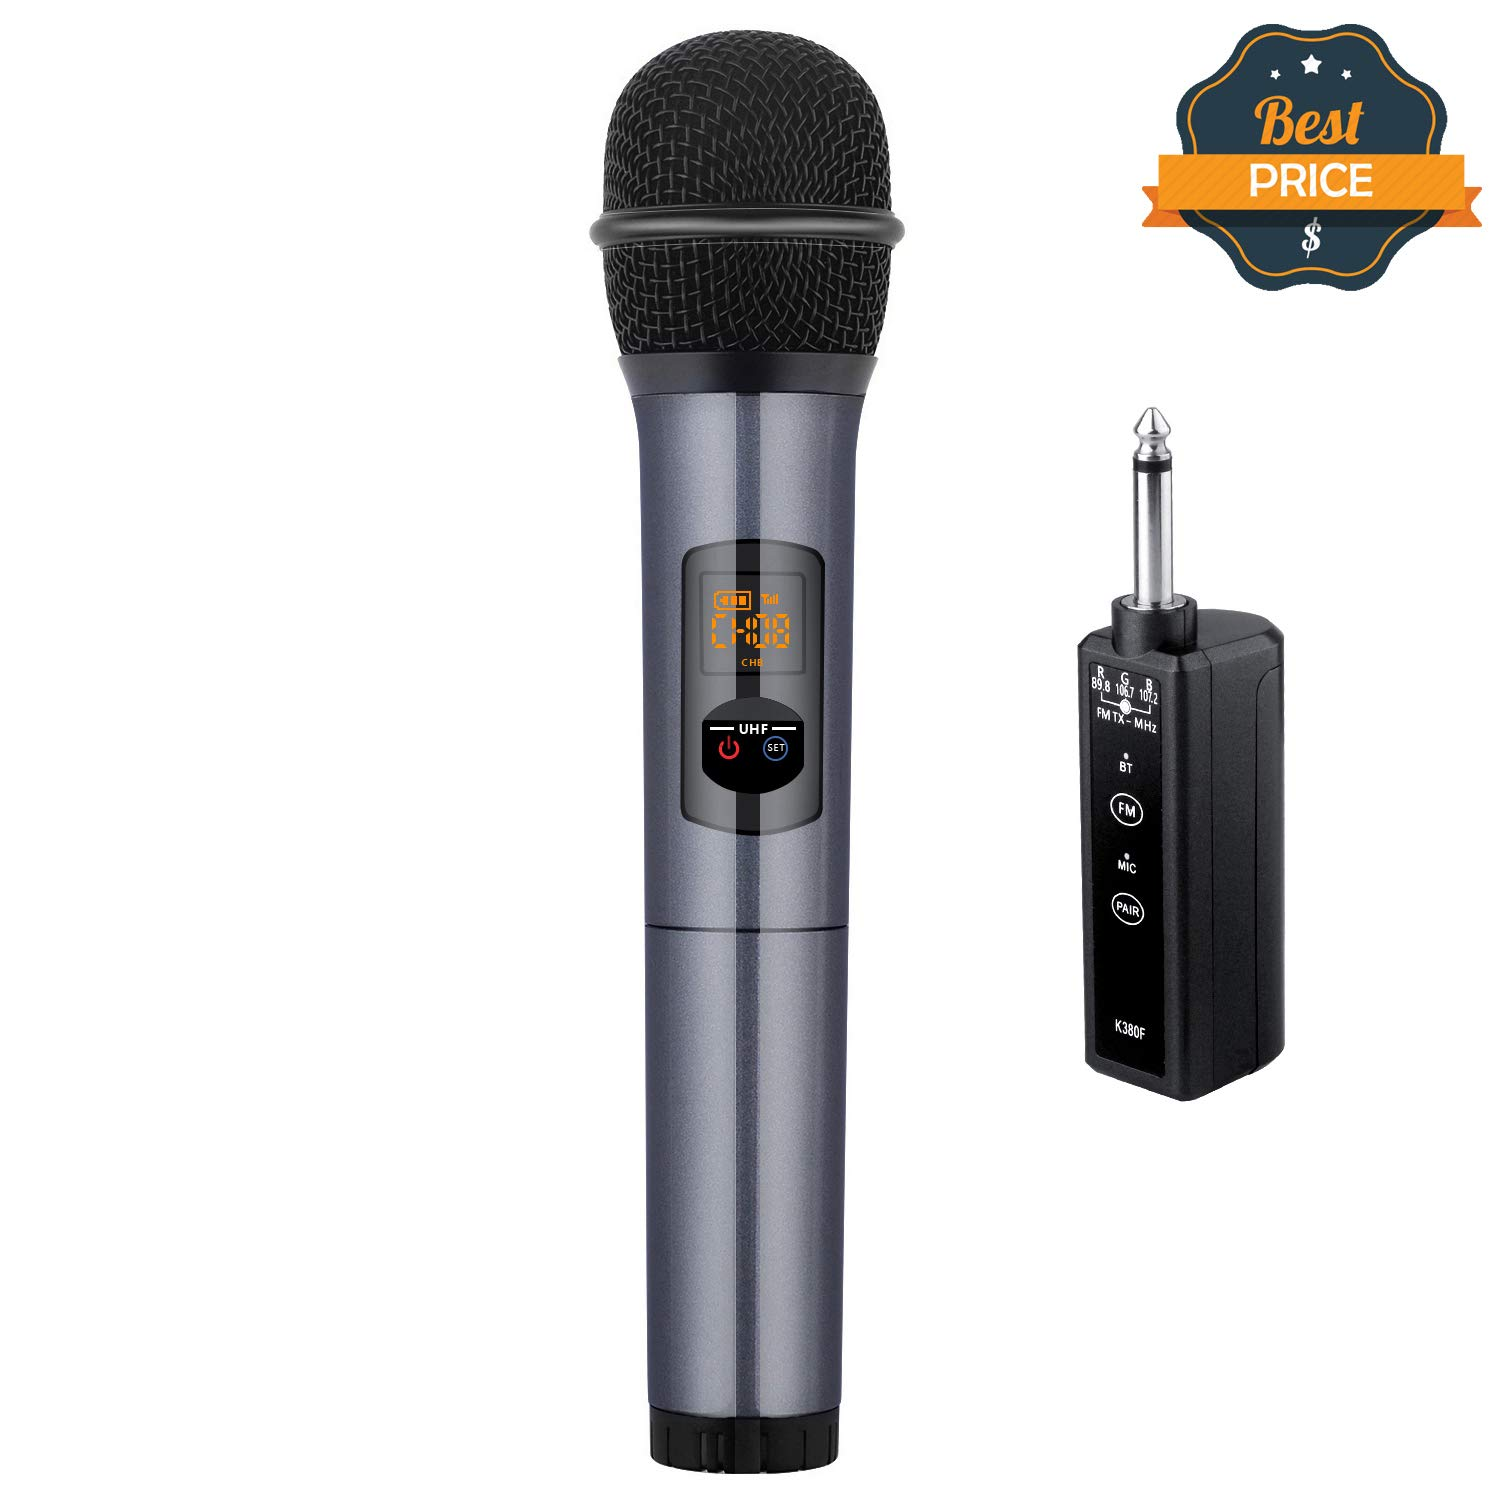 Kithouse K380F Wireless Microphone Karaoke Microphone Wireless Mic with Bluetooth Receiver Rechargeable Professional - UHF Dynamic FM Cordless Microphone For Singing Karaoke Speech(Elegant Gray) by KITHOUSE